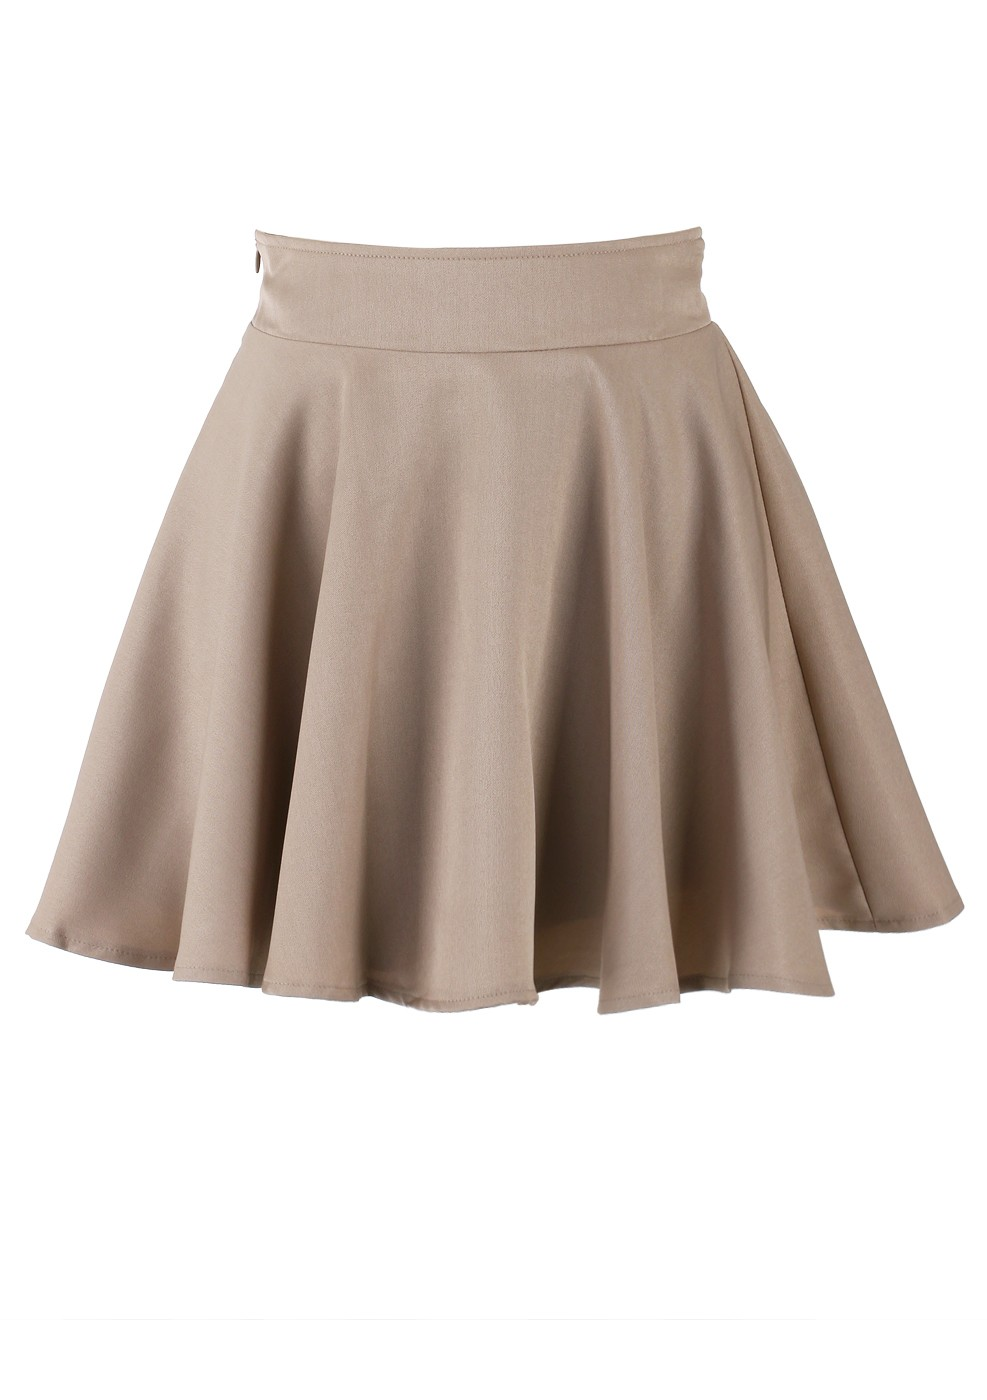 Pencil High Waist Skirt - Khaki Skater High Waist Skirt  bfefbd75d